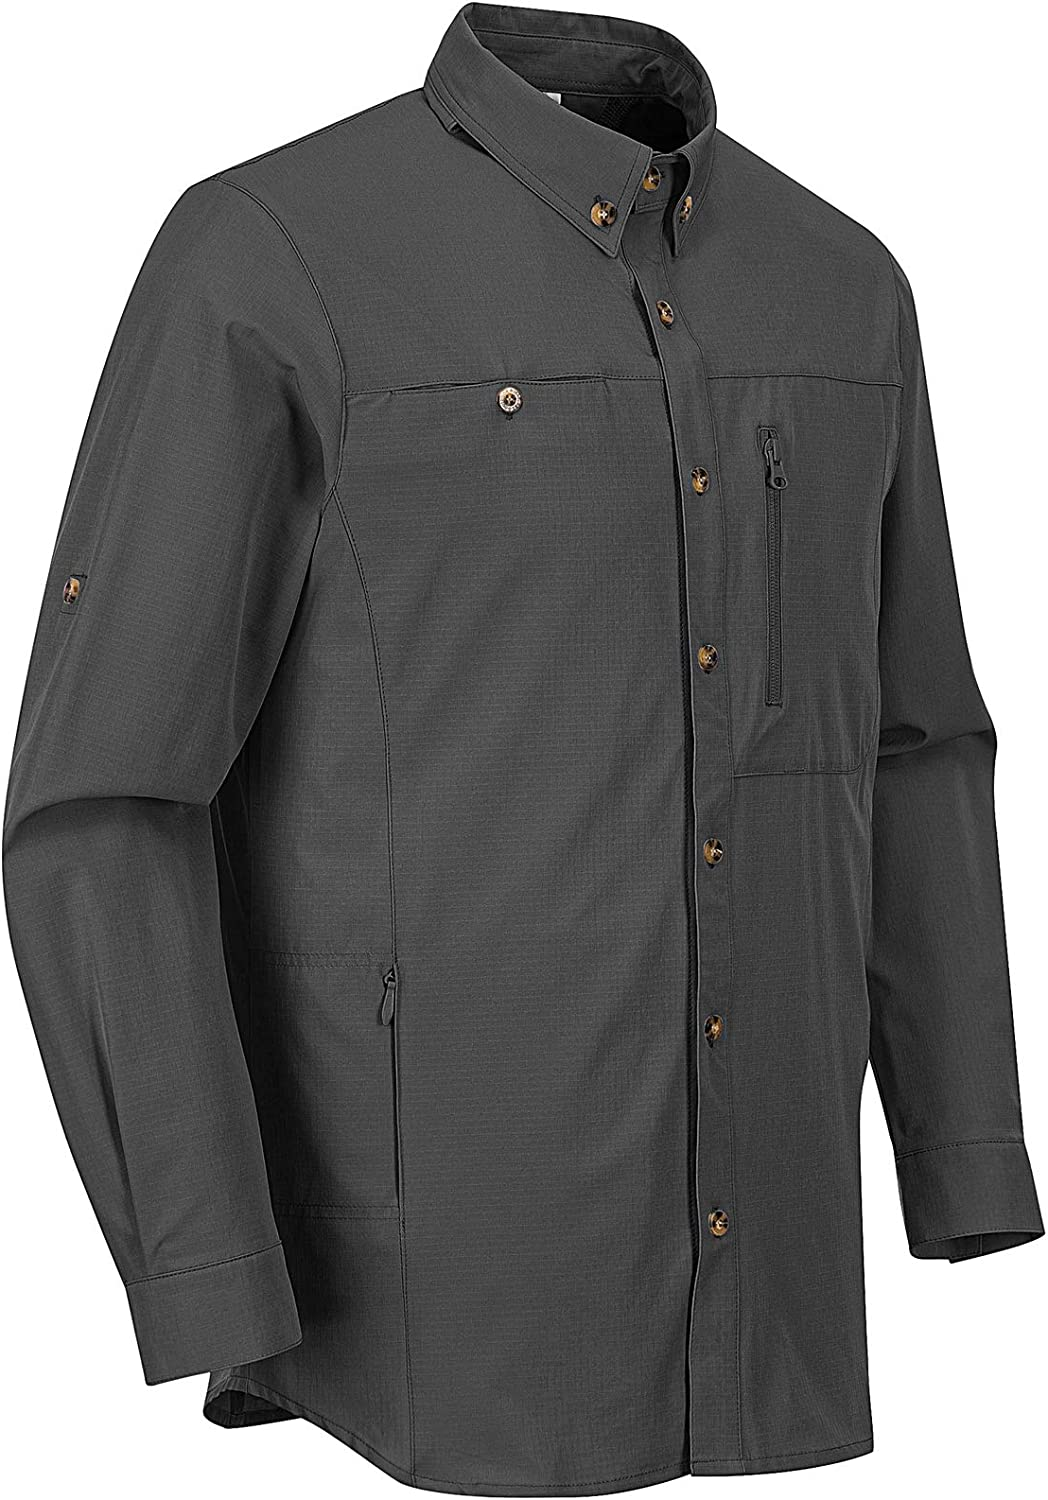 Outdoor In a popularity Ventures Men's Long Sleeve Hiking Latest item 50+ Prot Shirts UV UPF